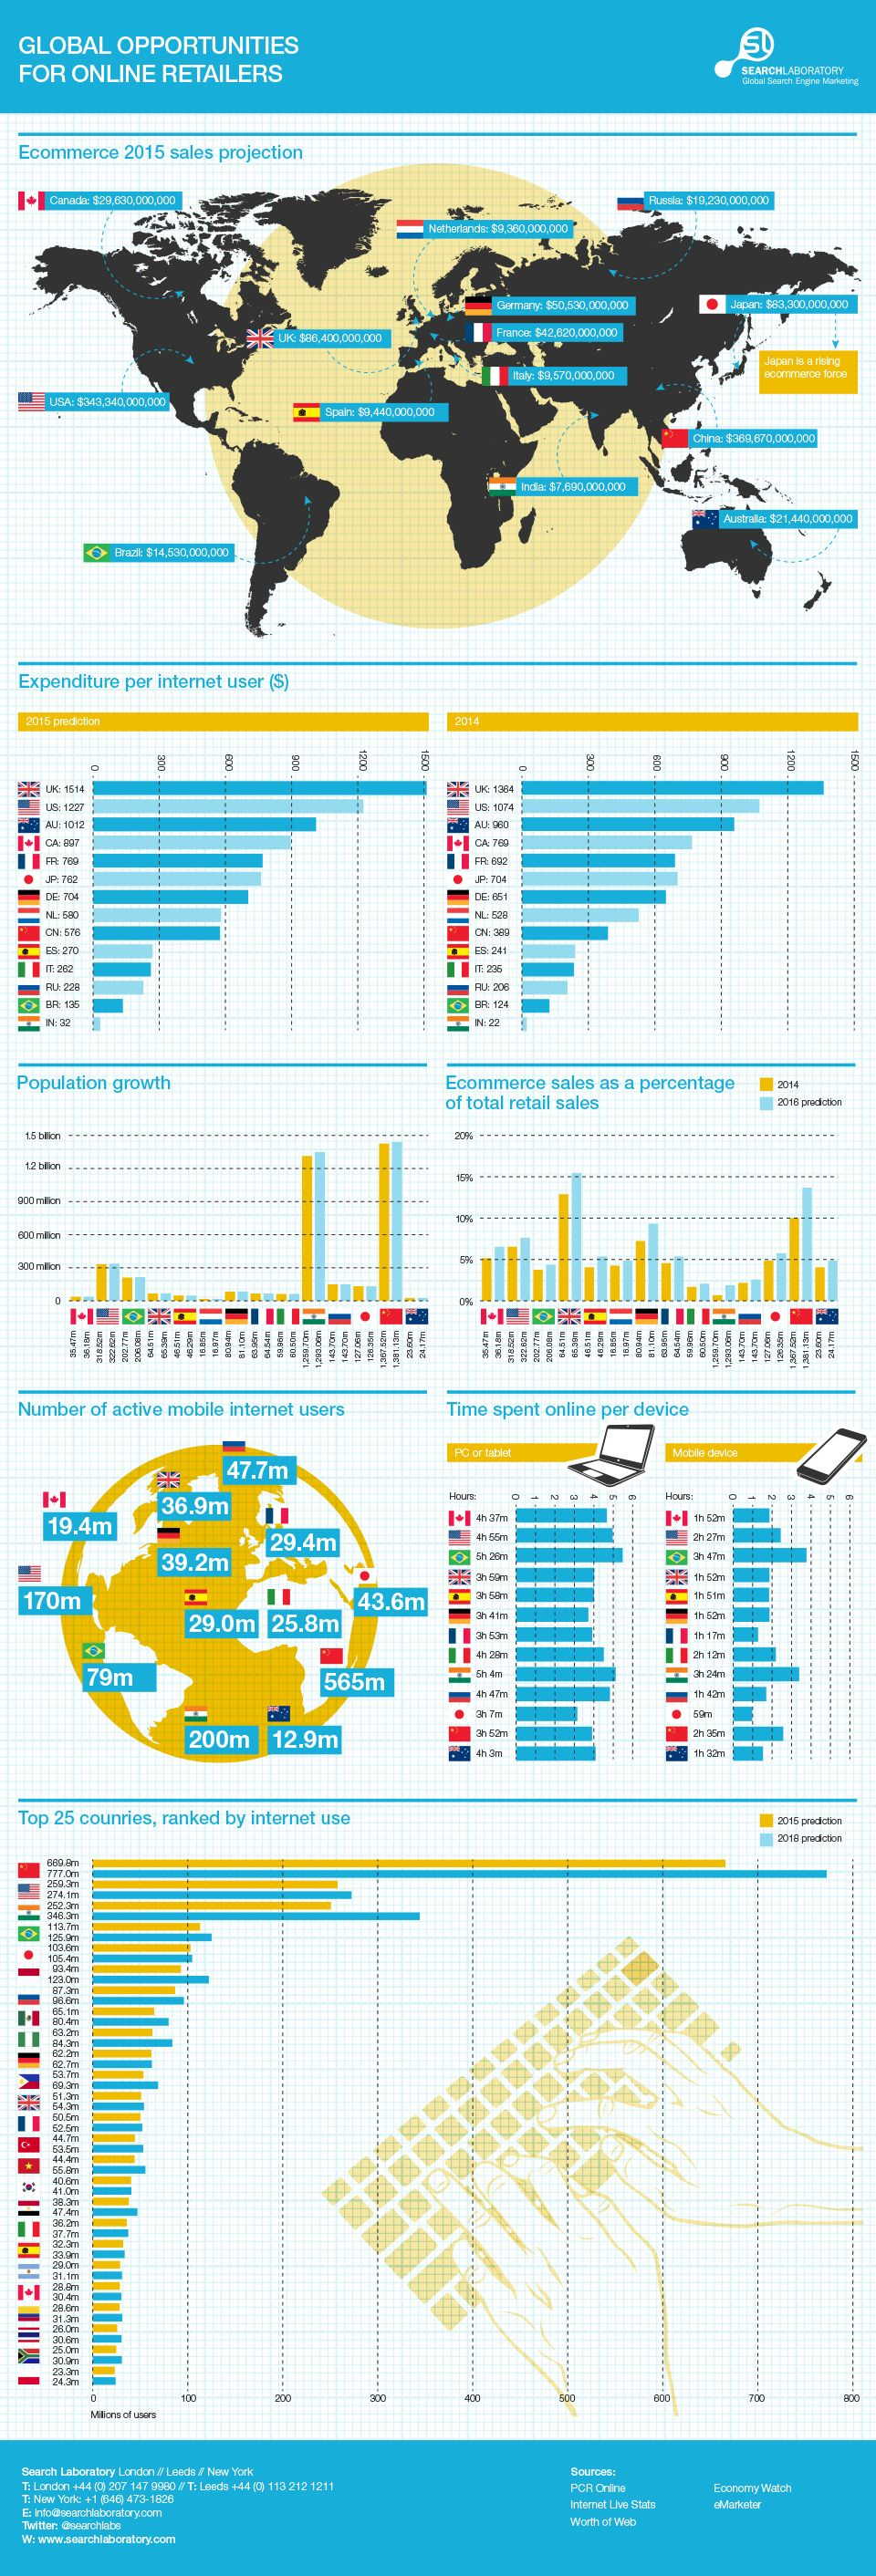 Global Opportunities for Online Retailers #infographic